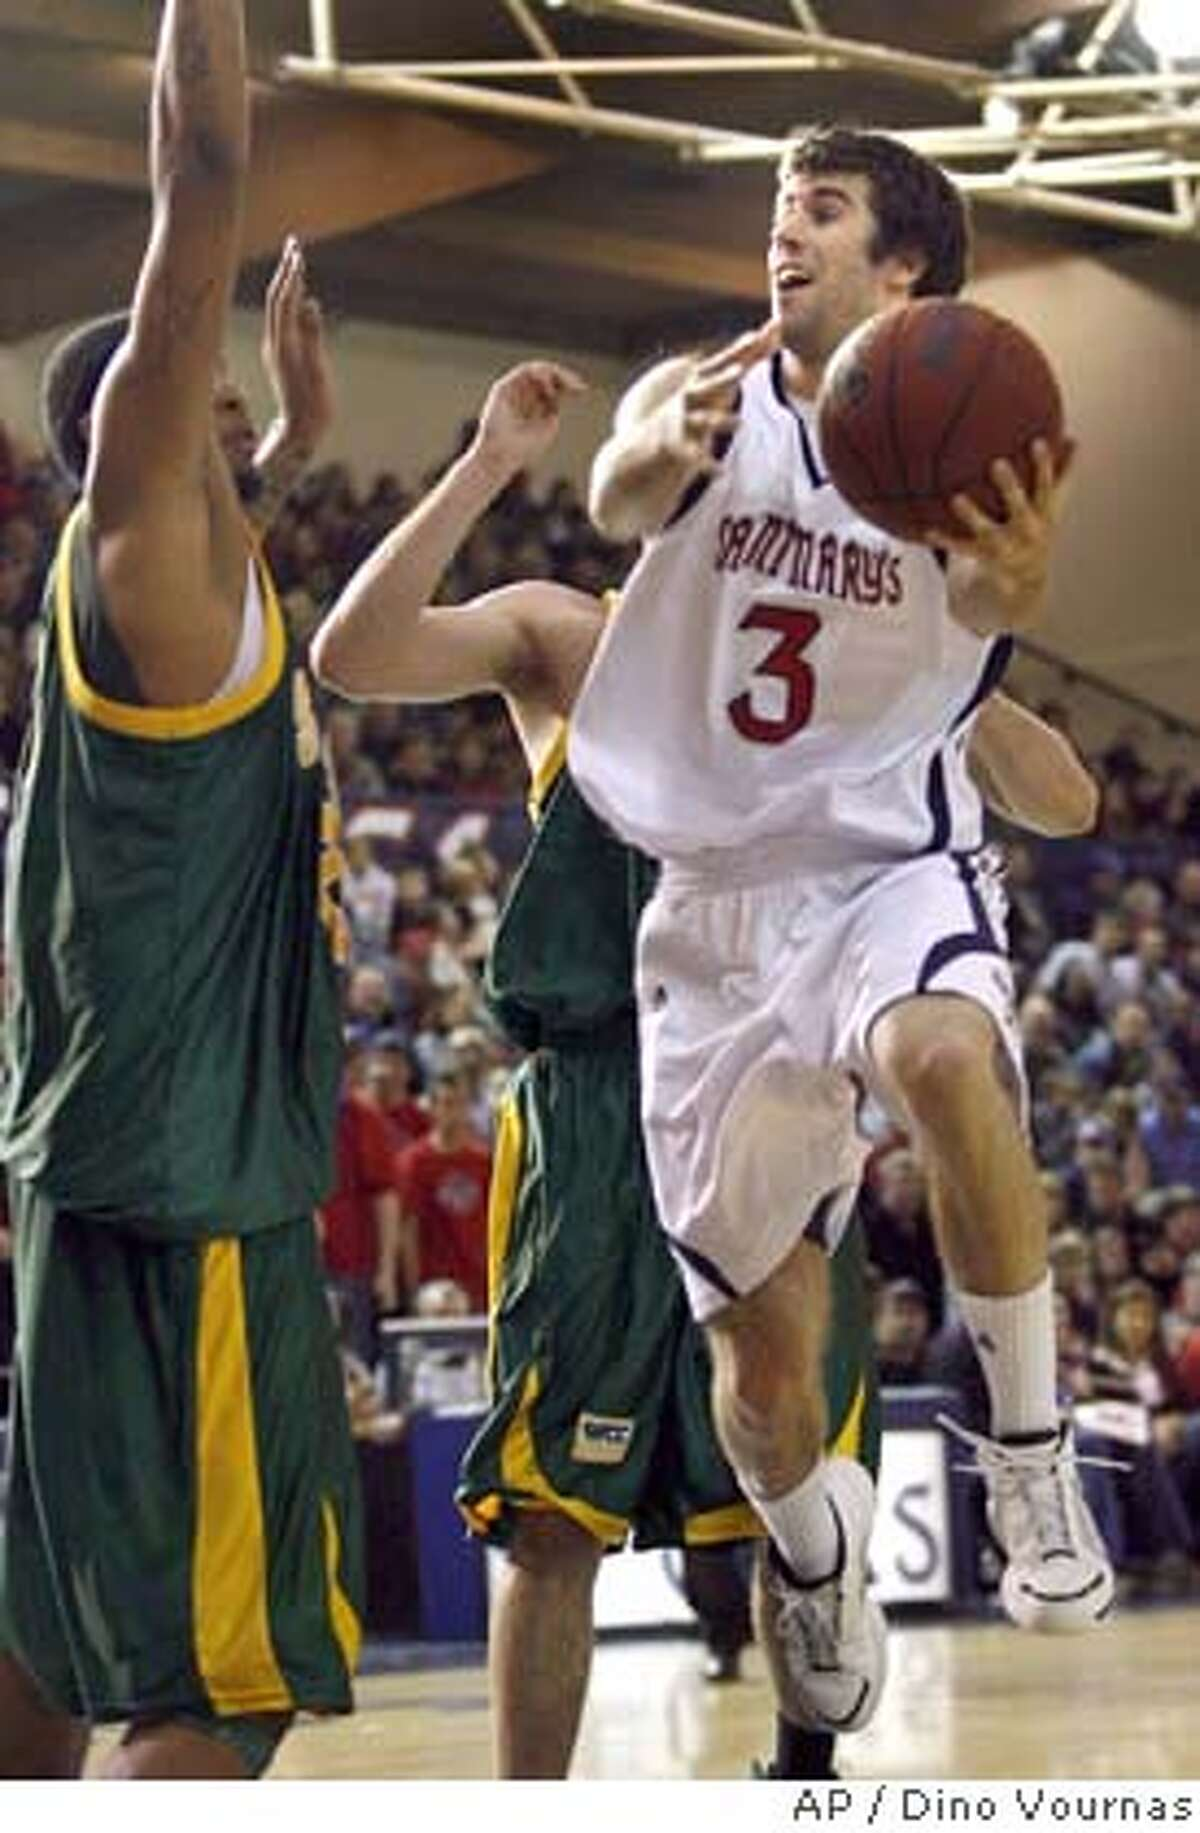 Saint Mary's Carlin Hughes (3) of Australia, goes in for a layup attempt against San Francisco's James Morgan, left, in the first half of an NCAA basketball game, Friday, Fri. 8, 2008 in Moraga, Calif. (AP Photo/Dino Vournas) EFE OUT